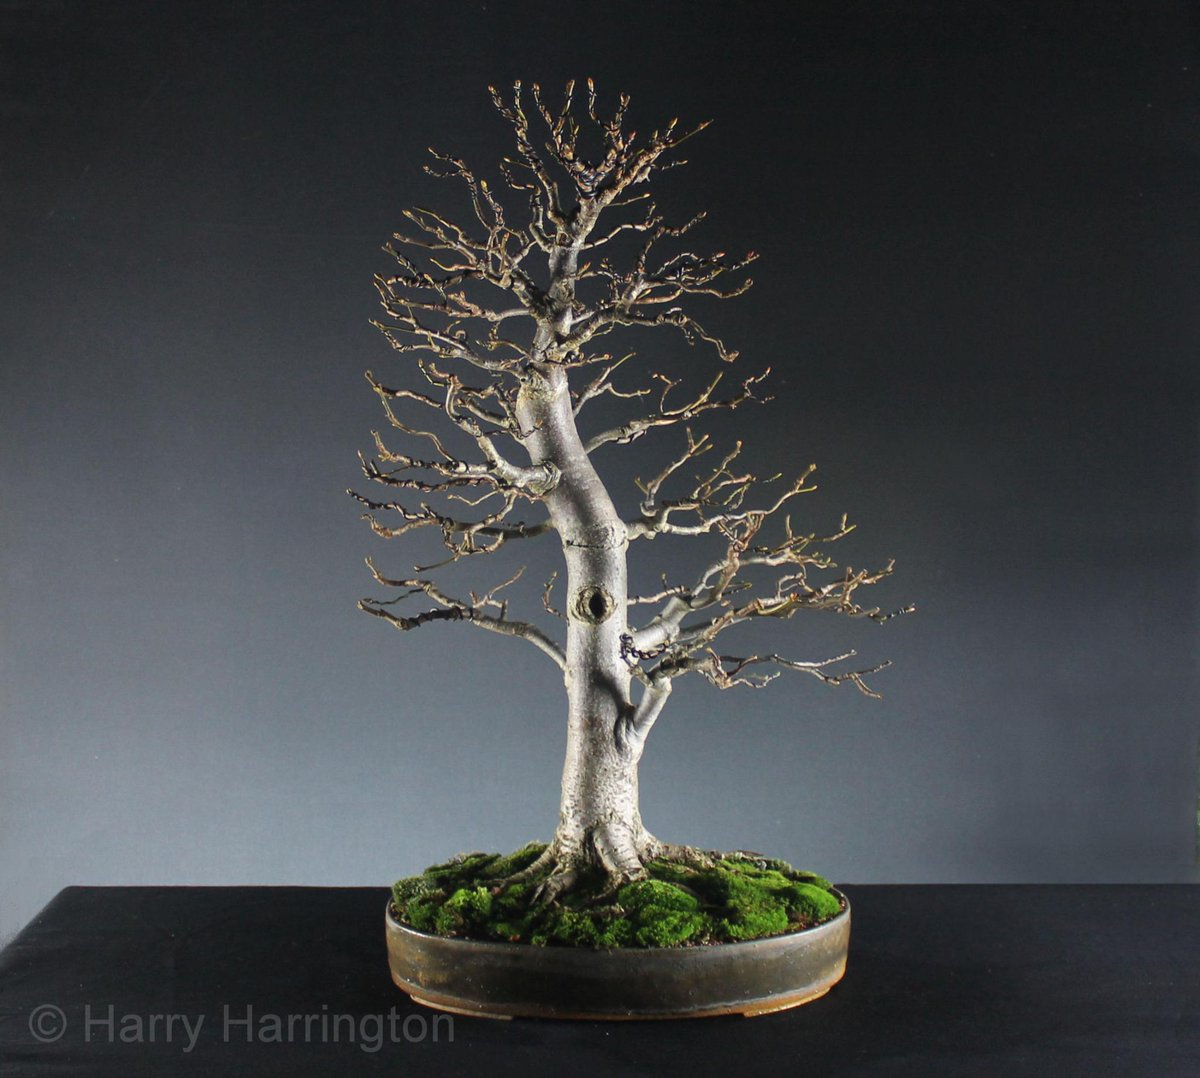 Harry Harrington On Twitter My Tilia Cordata Bonsai After Autumn Wiring Pruning And Height 22 56cm In Development Since 2001 Linden